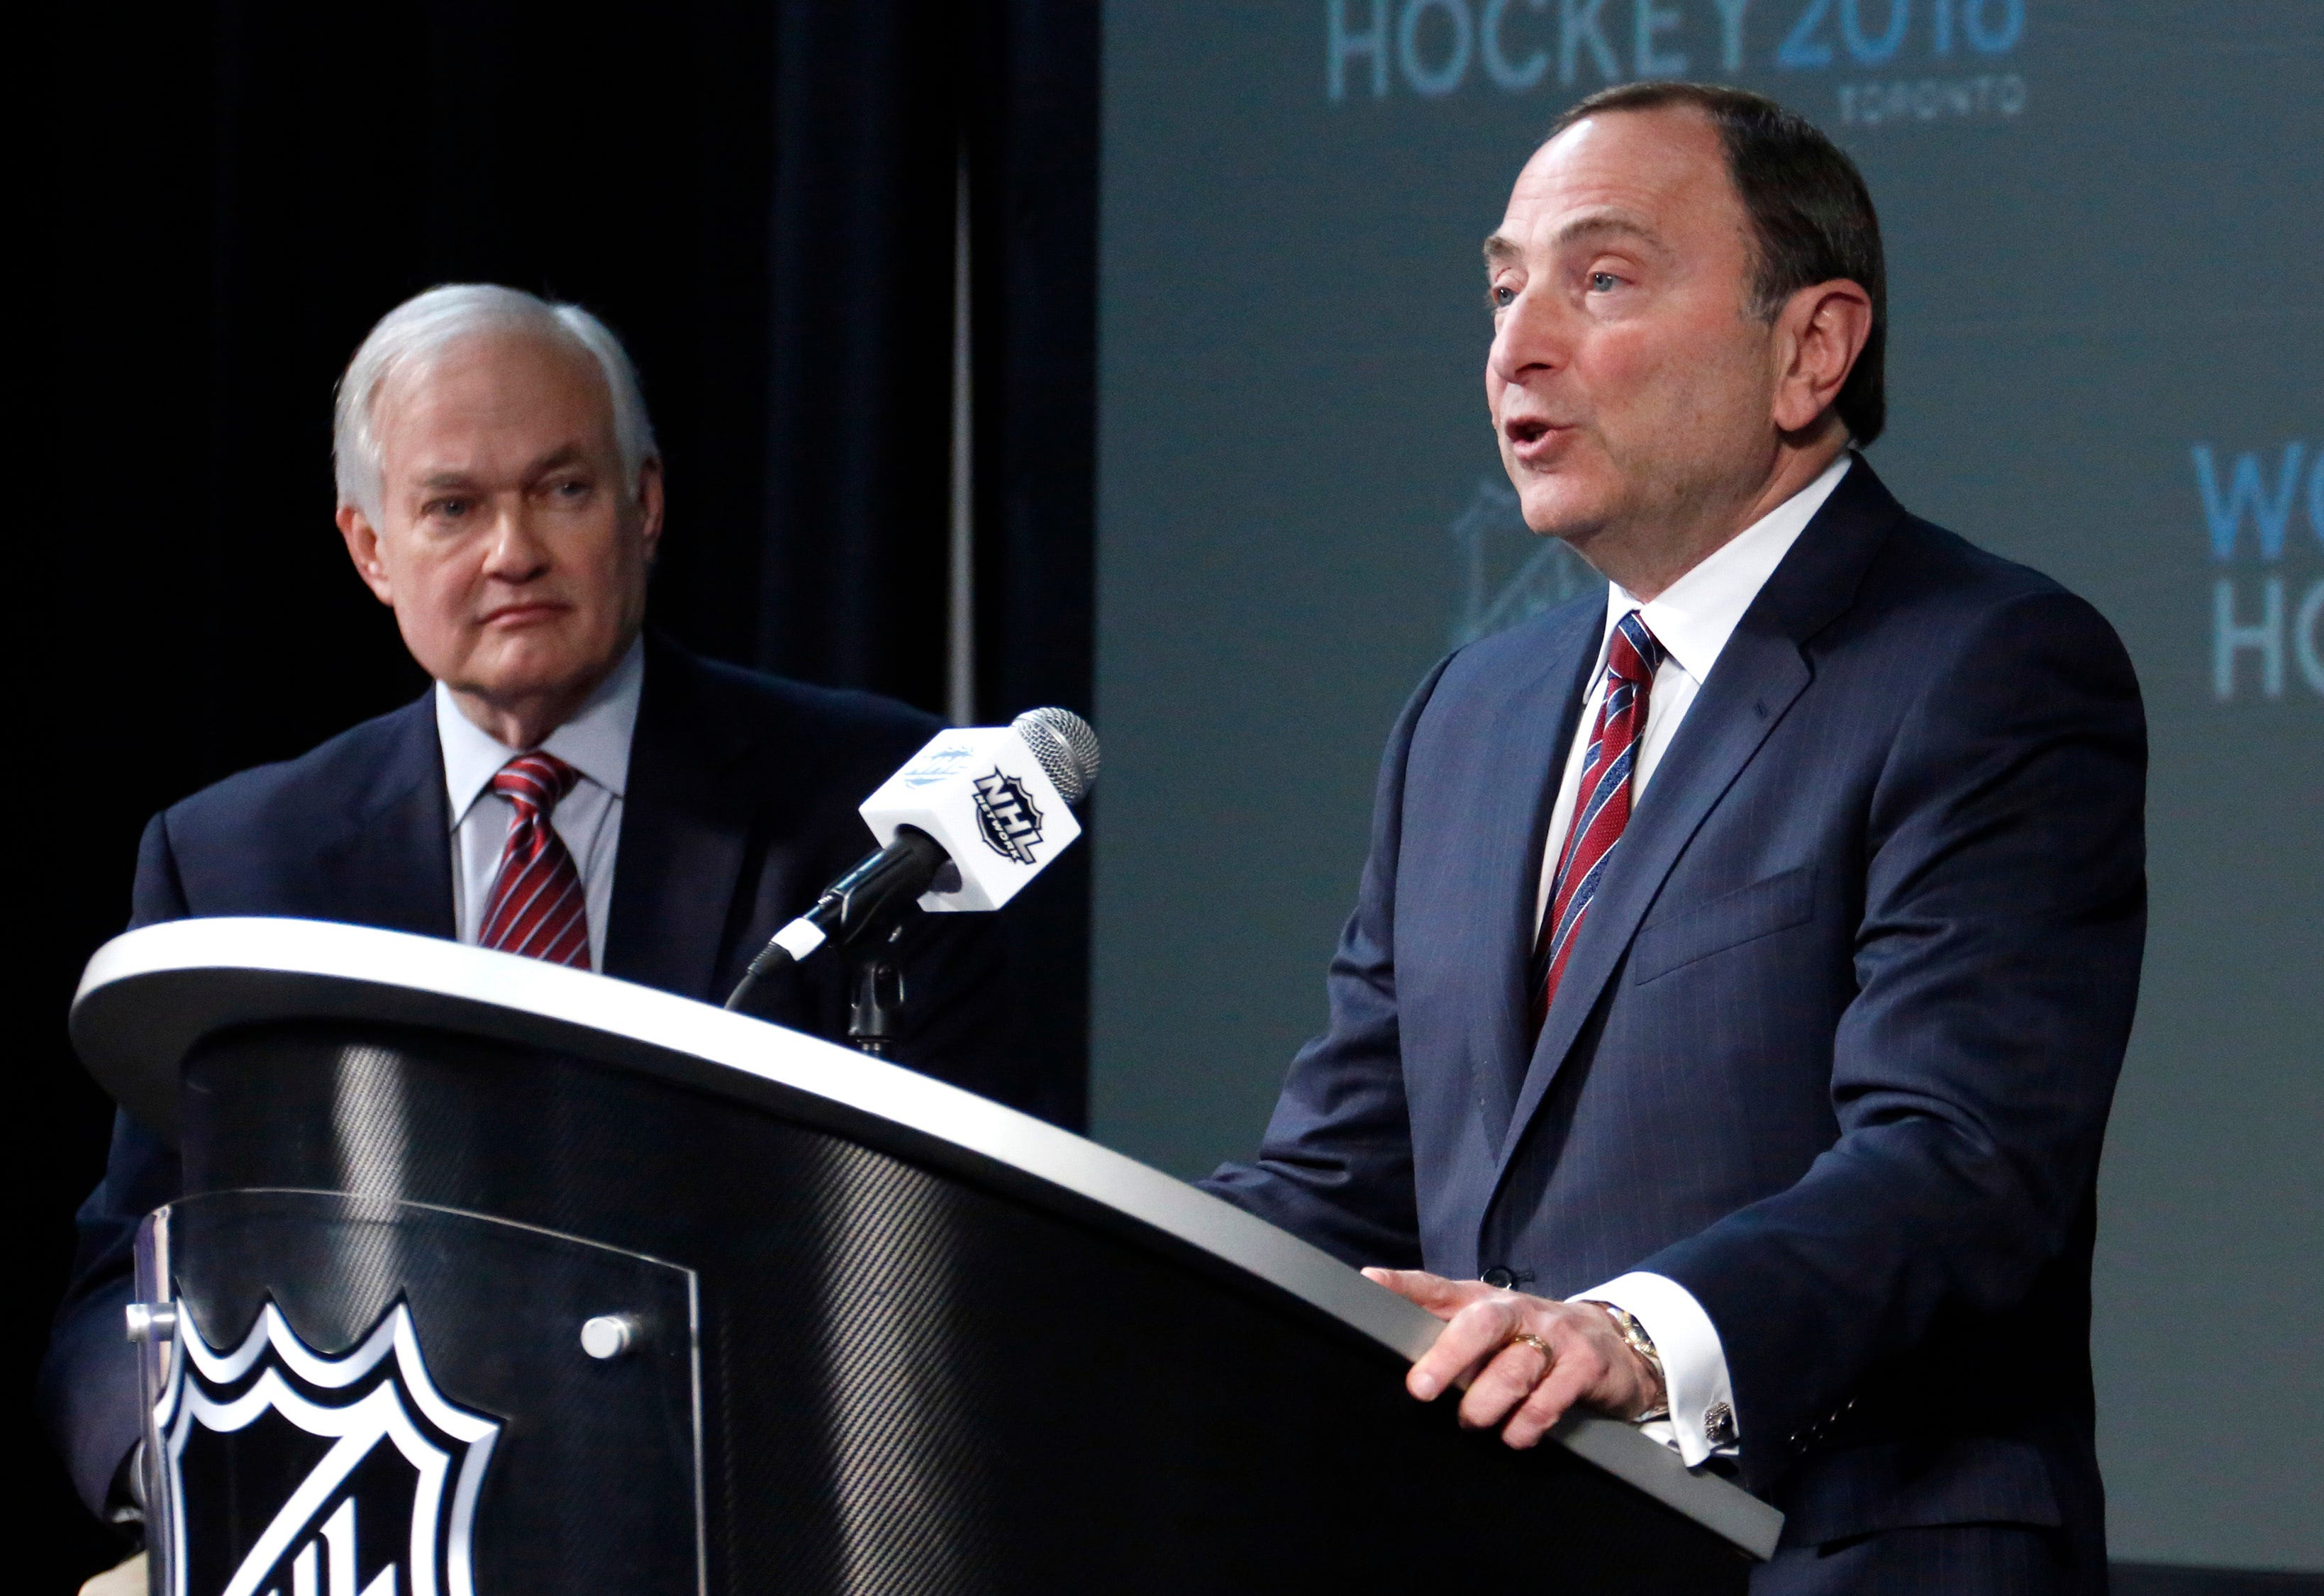 Rebooting World Cup of Hockey to be part of NHL labor talks